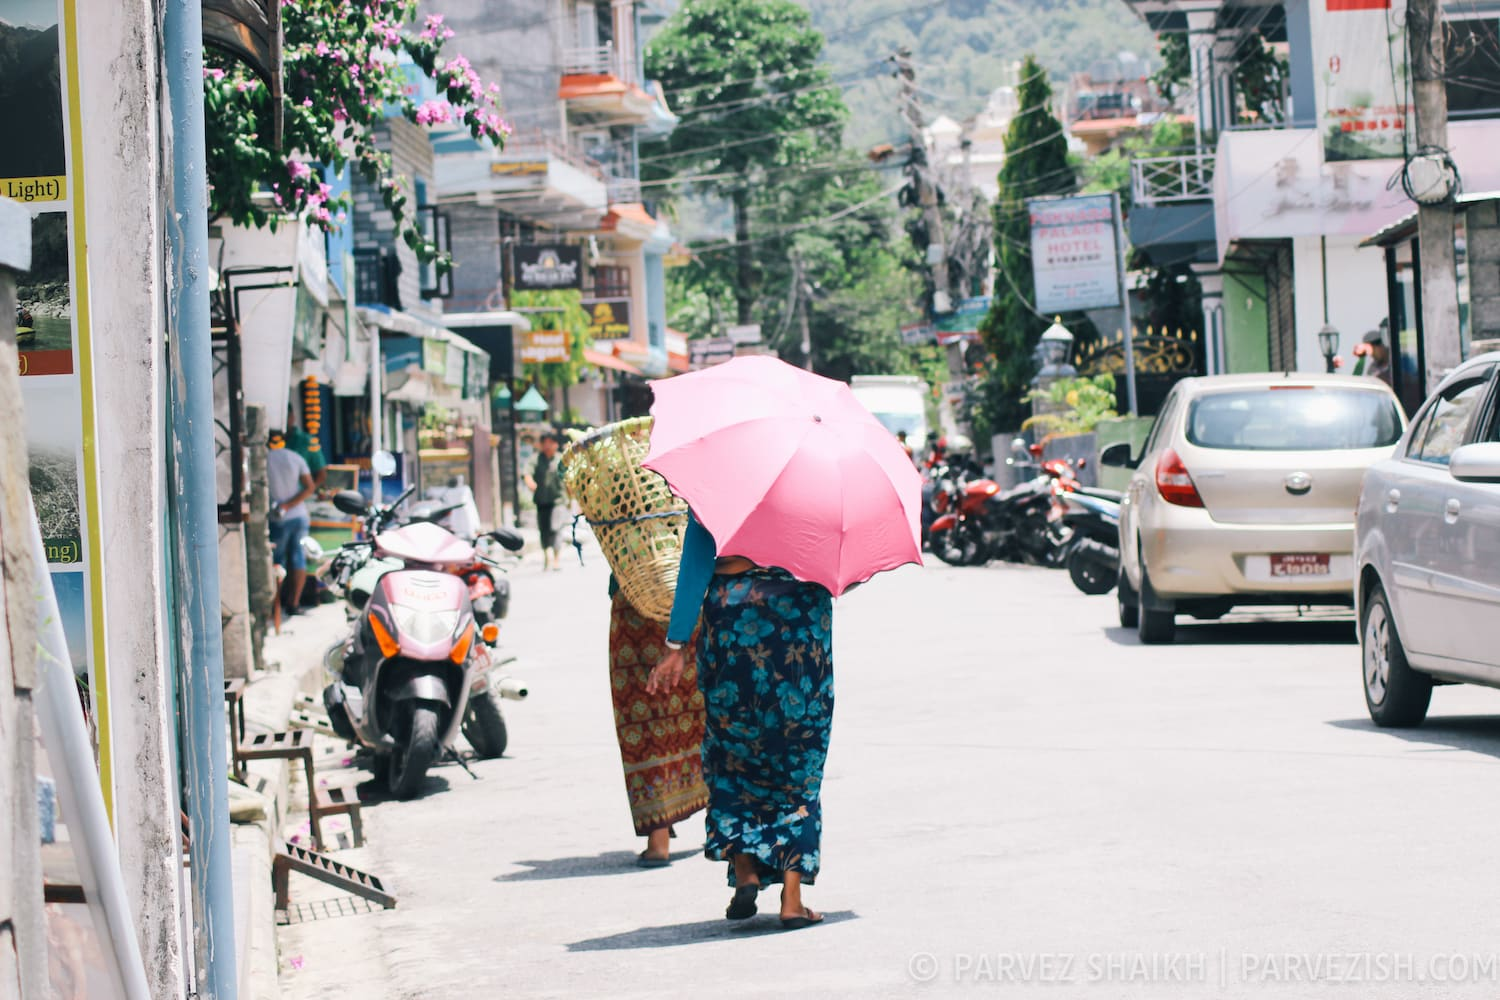 In the Streets of Pokhara, Nepal